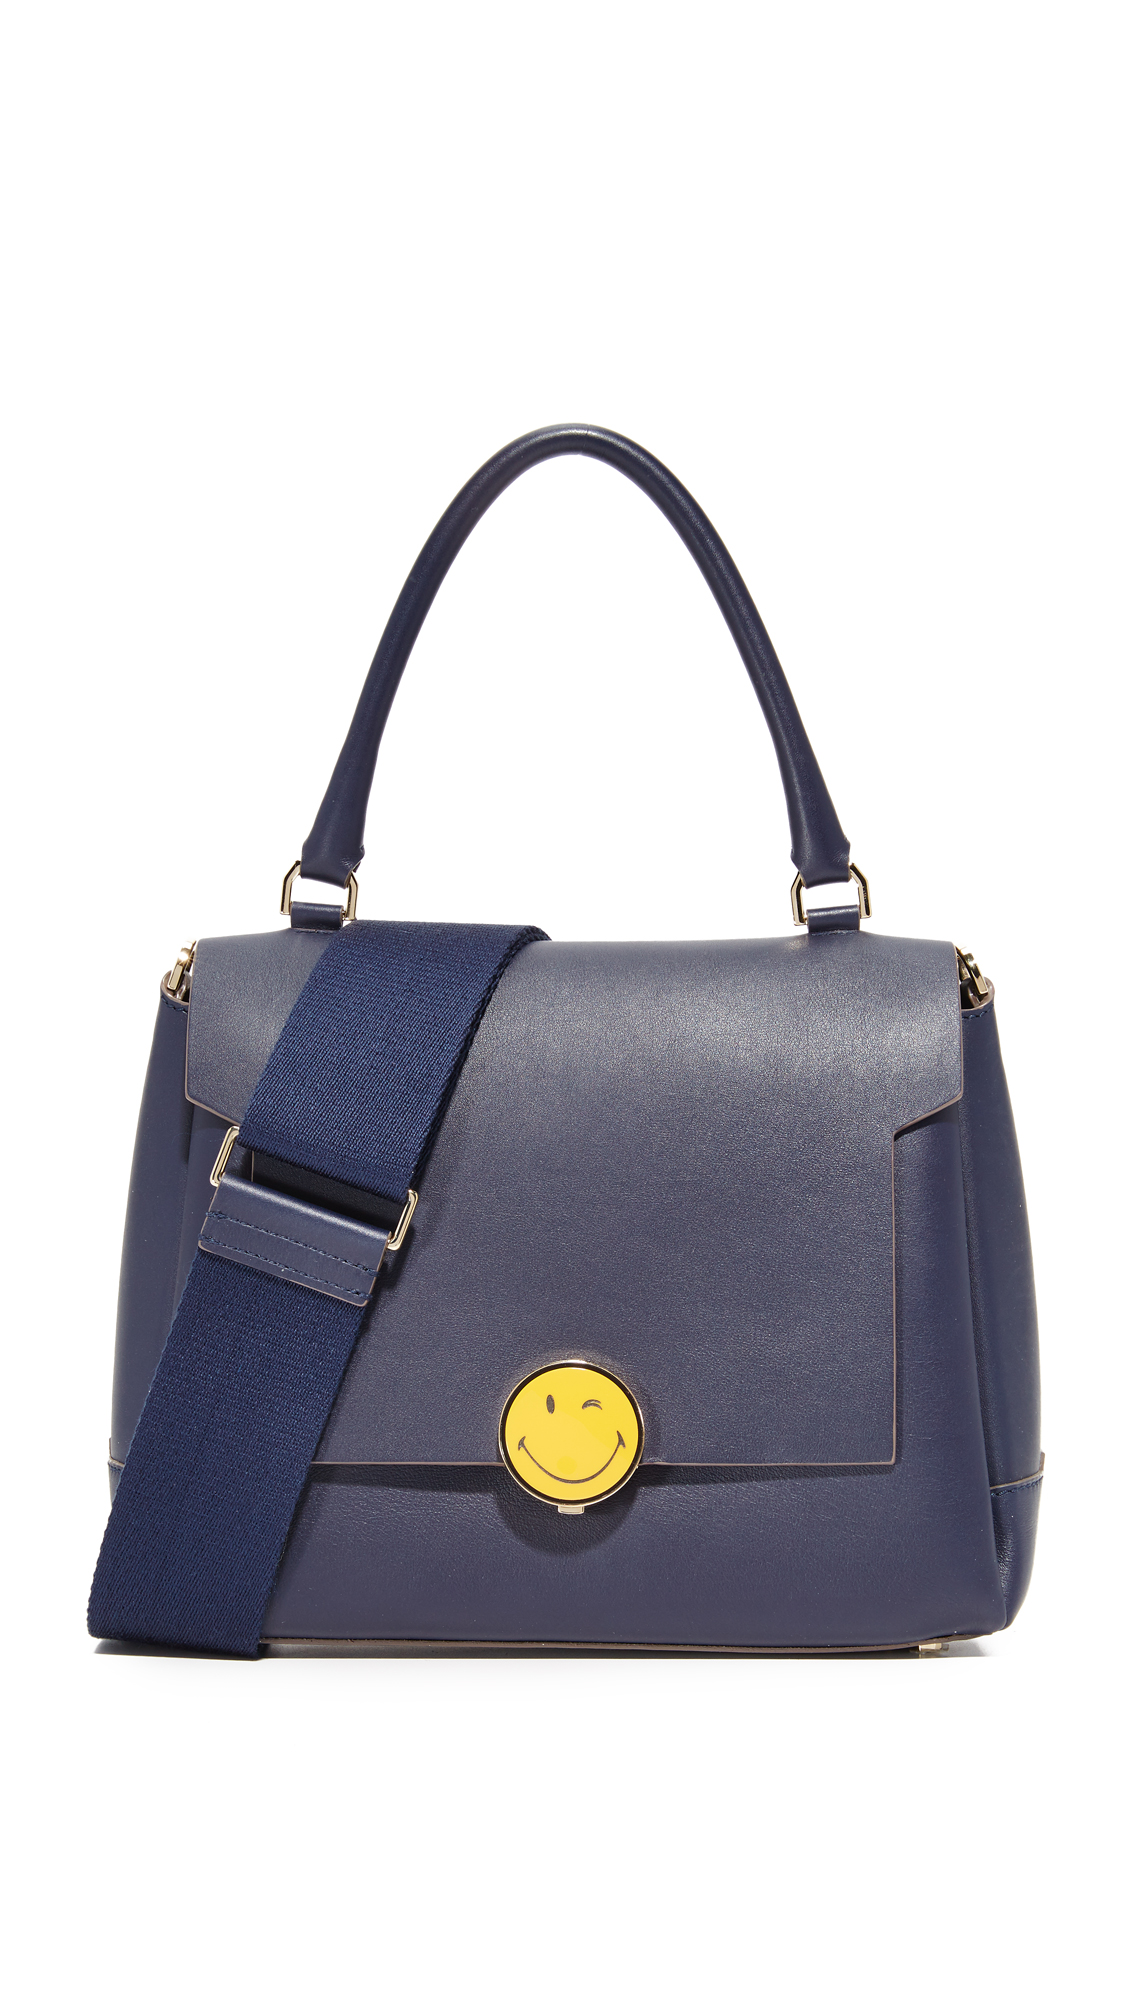 Anya Hindmarch Bathurst Small Satchel - Indigo